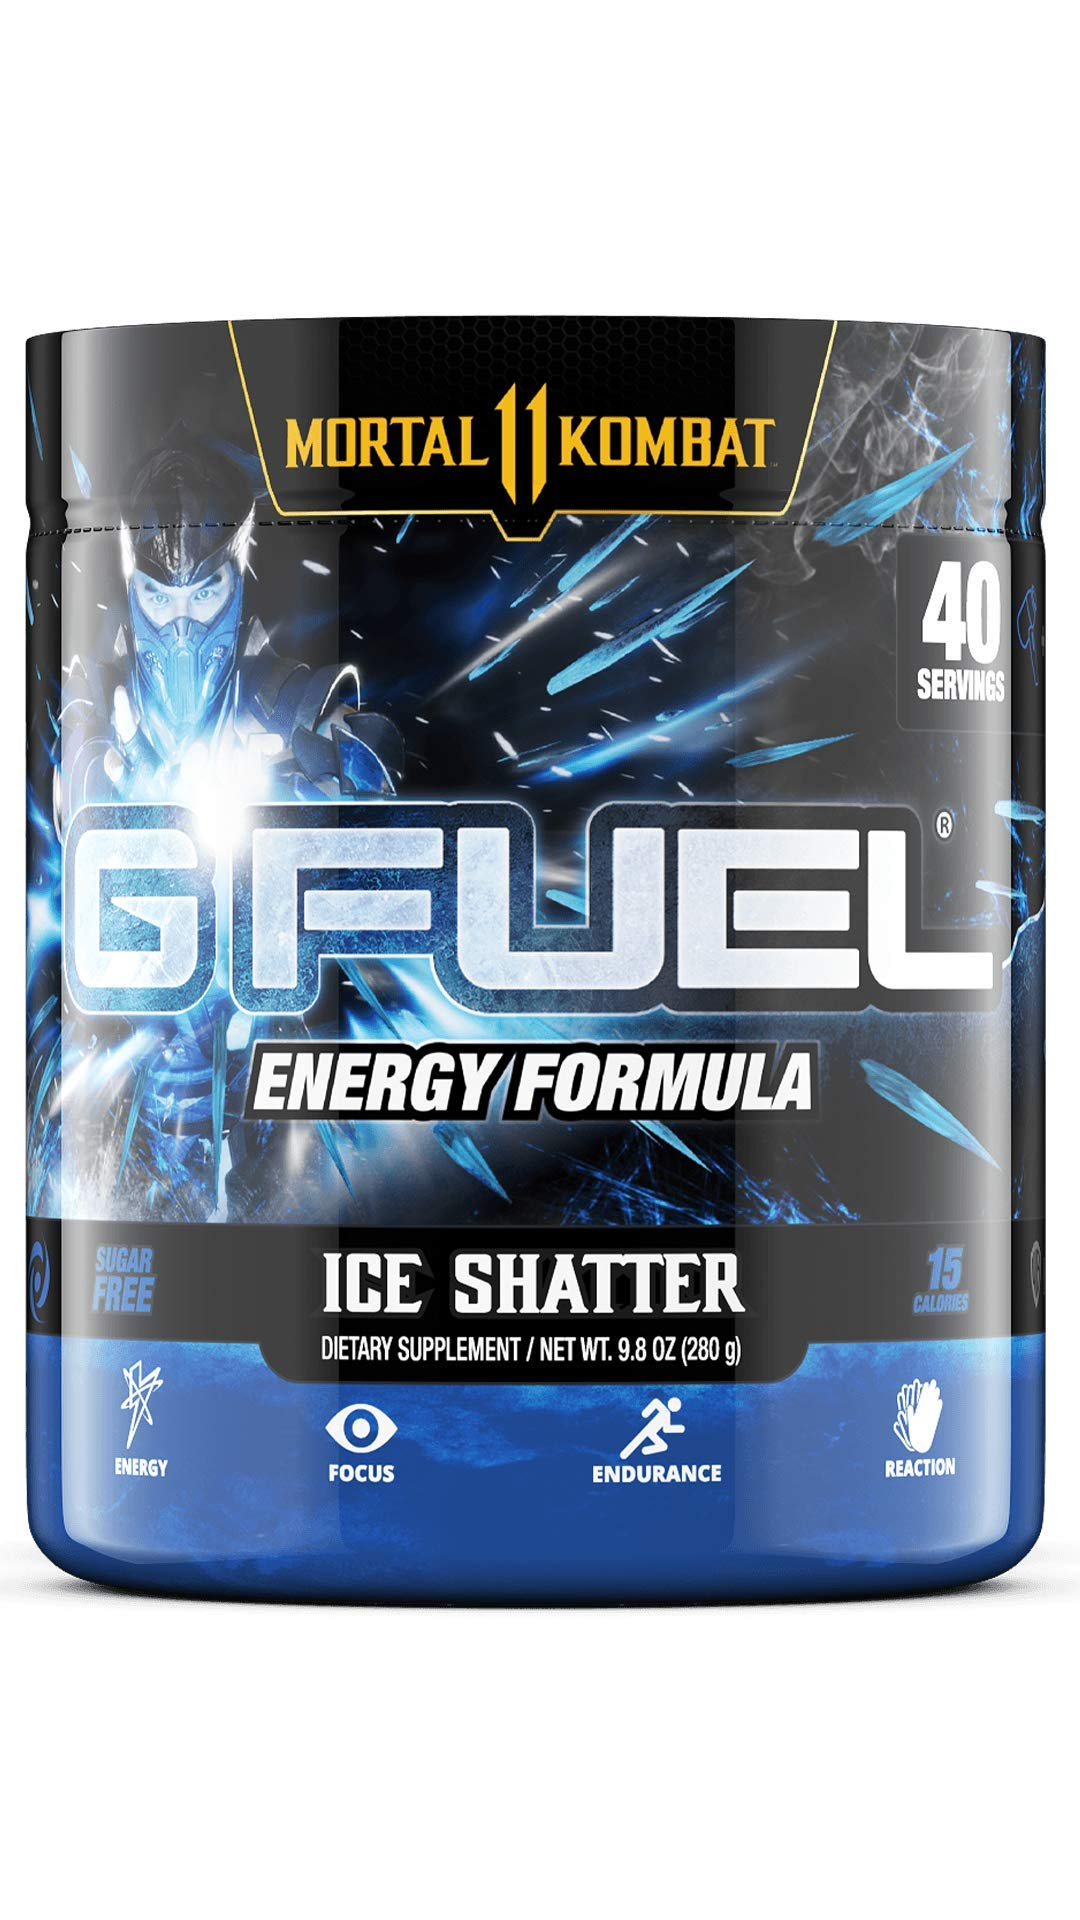 G Fuel Sub Zero's Ice Shatter (40 Servings) Elite Energy and Endurance Powder 9.8 oz. (Inspired by Mortal Kombat)